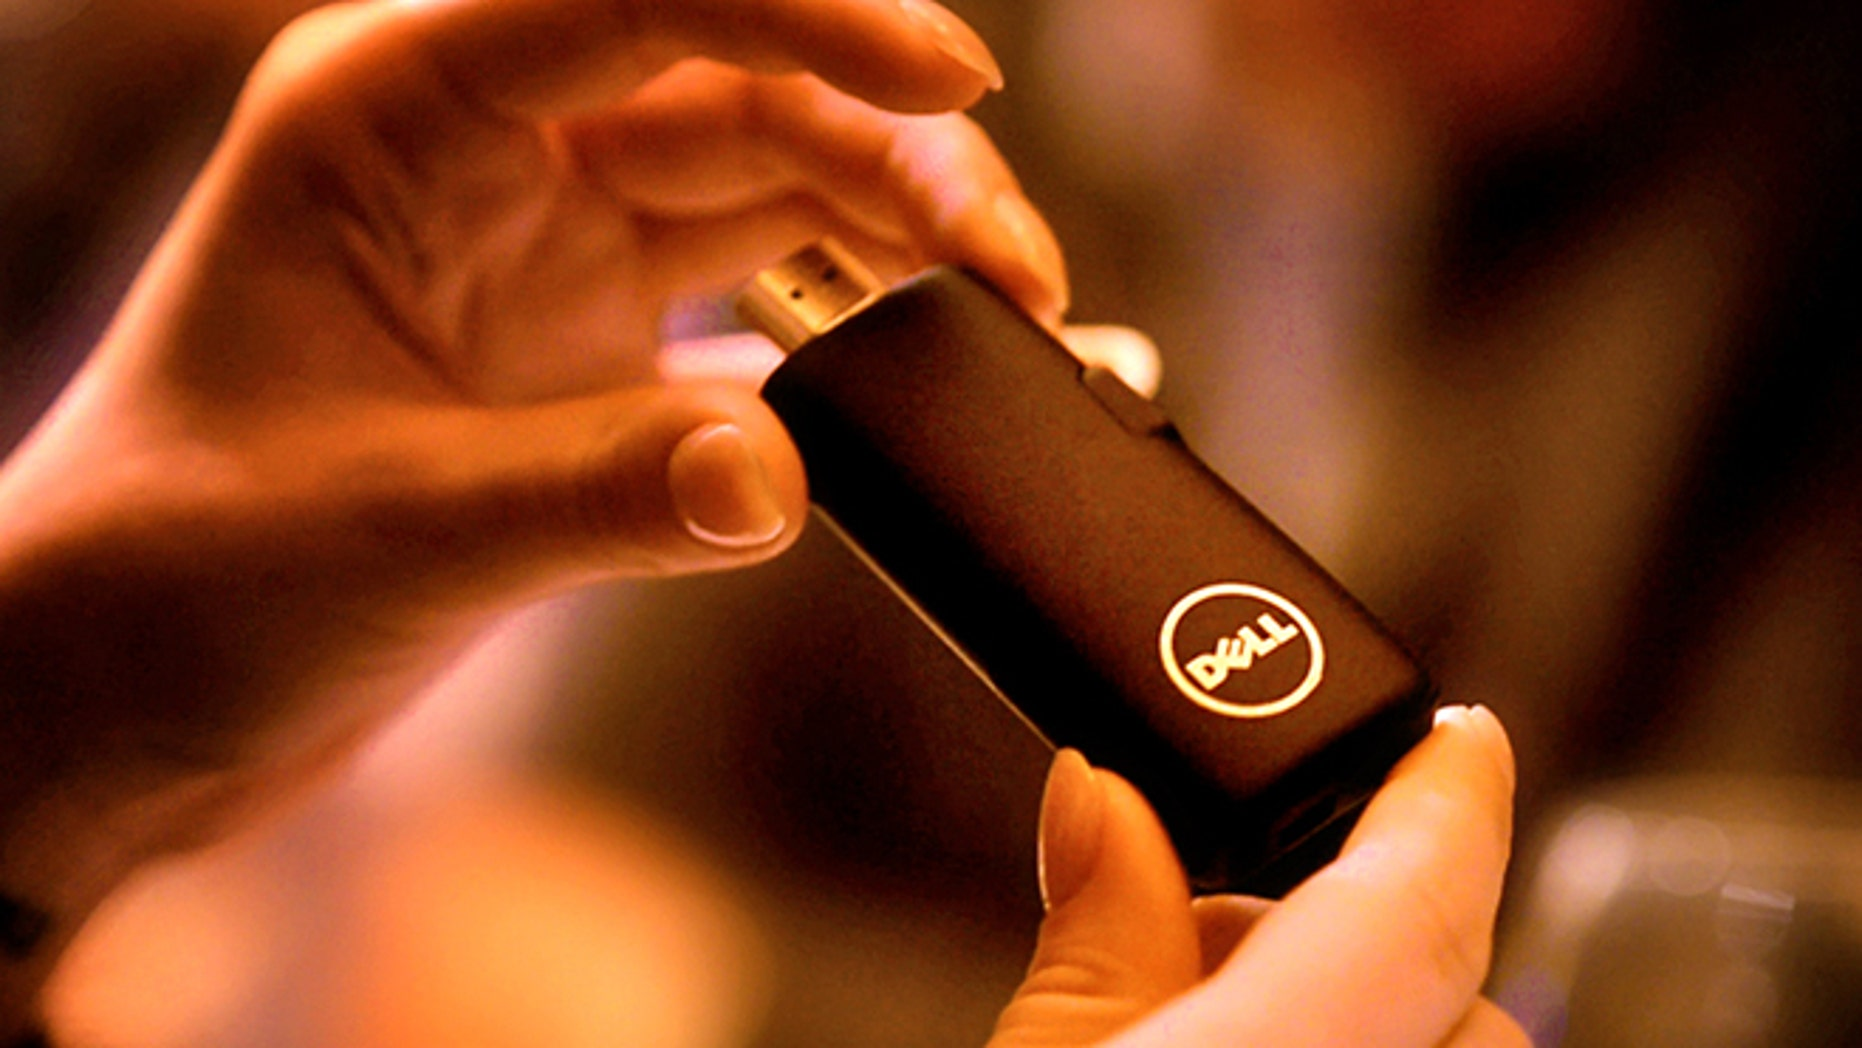 To combat dwindling sales in a post-PC era, Dell will release a new sub $100 thumbstick computer by June, officials say.